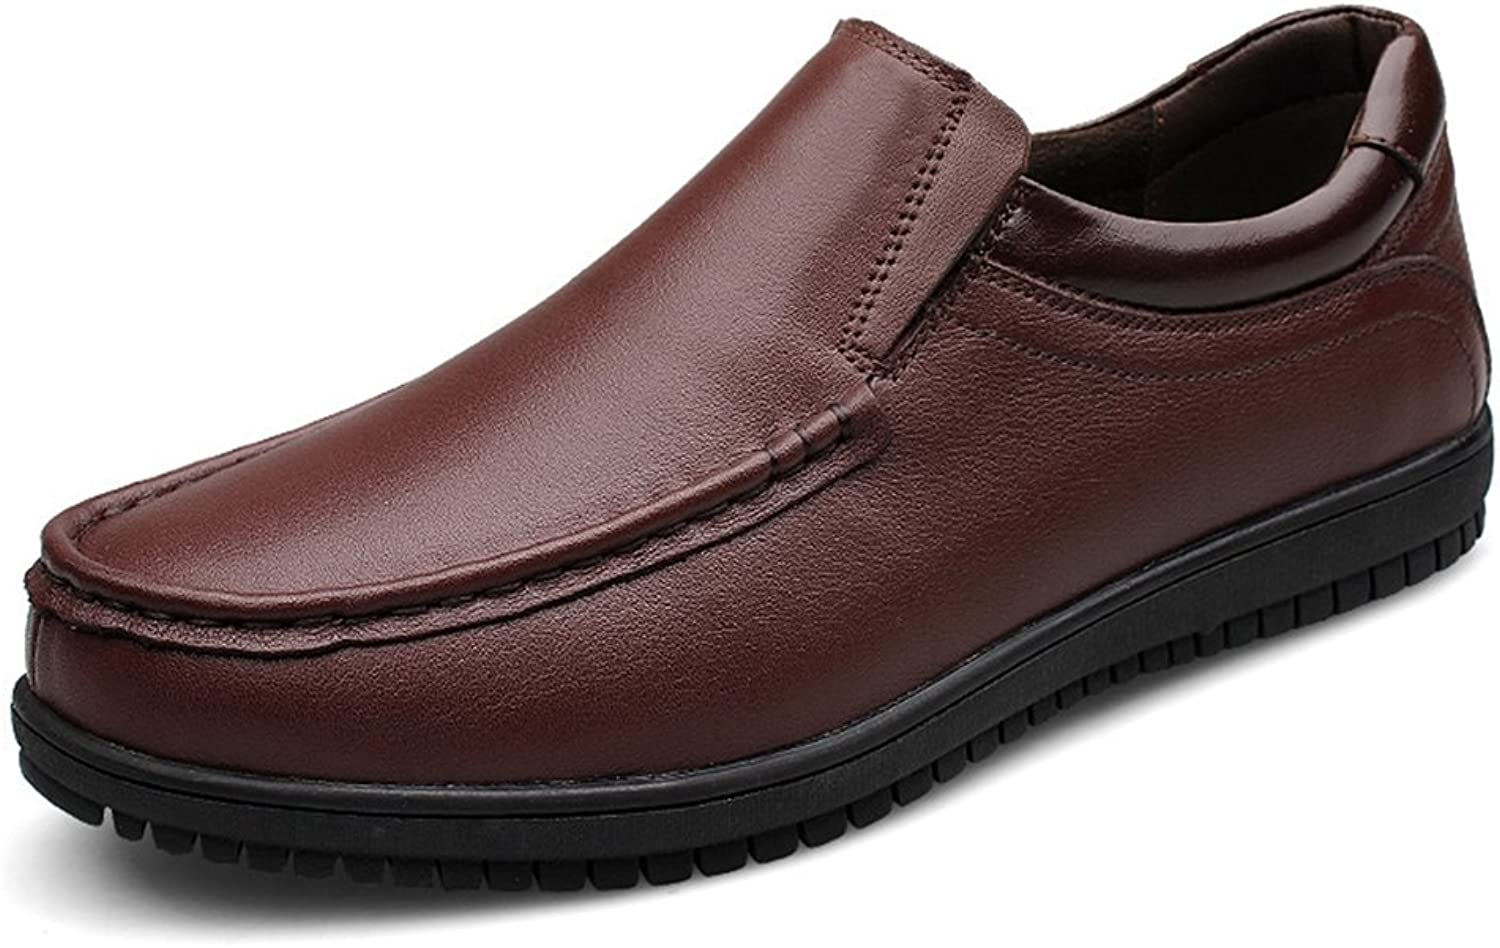 TDA Men's Slip On Quality Leather Walking Business Oxford Boat shoes